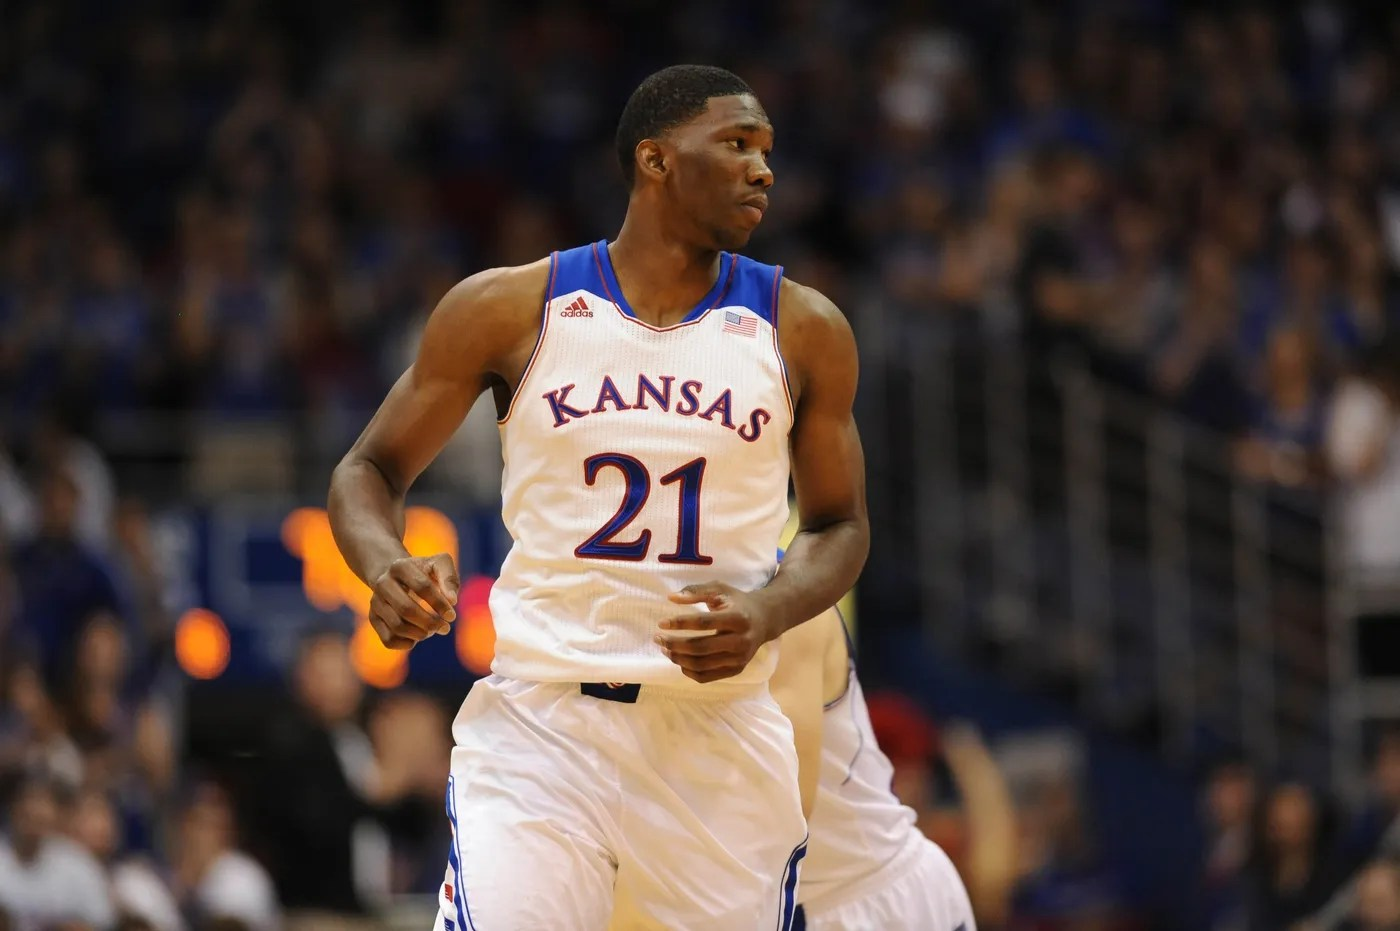 Nov 8, 2013; Lawrence, KS, USA; Kansas Jayhawks center Joel Embiid (21) walks to the near end of the court during the second half of the game against the Louisiana Monroe Warhawks at Allen Fieldhouse. Kansas won 80 - 63.